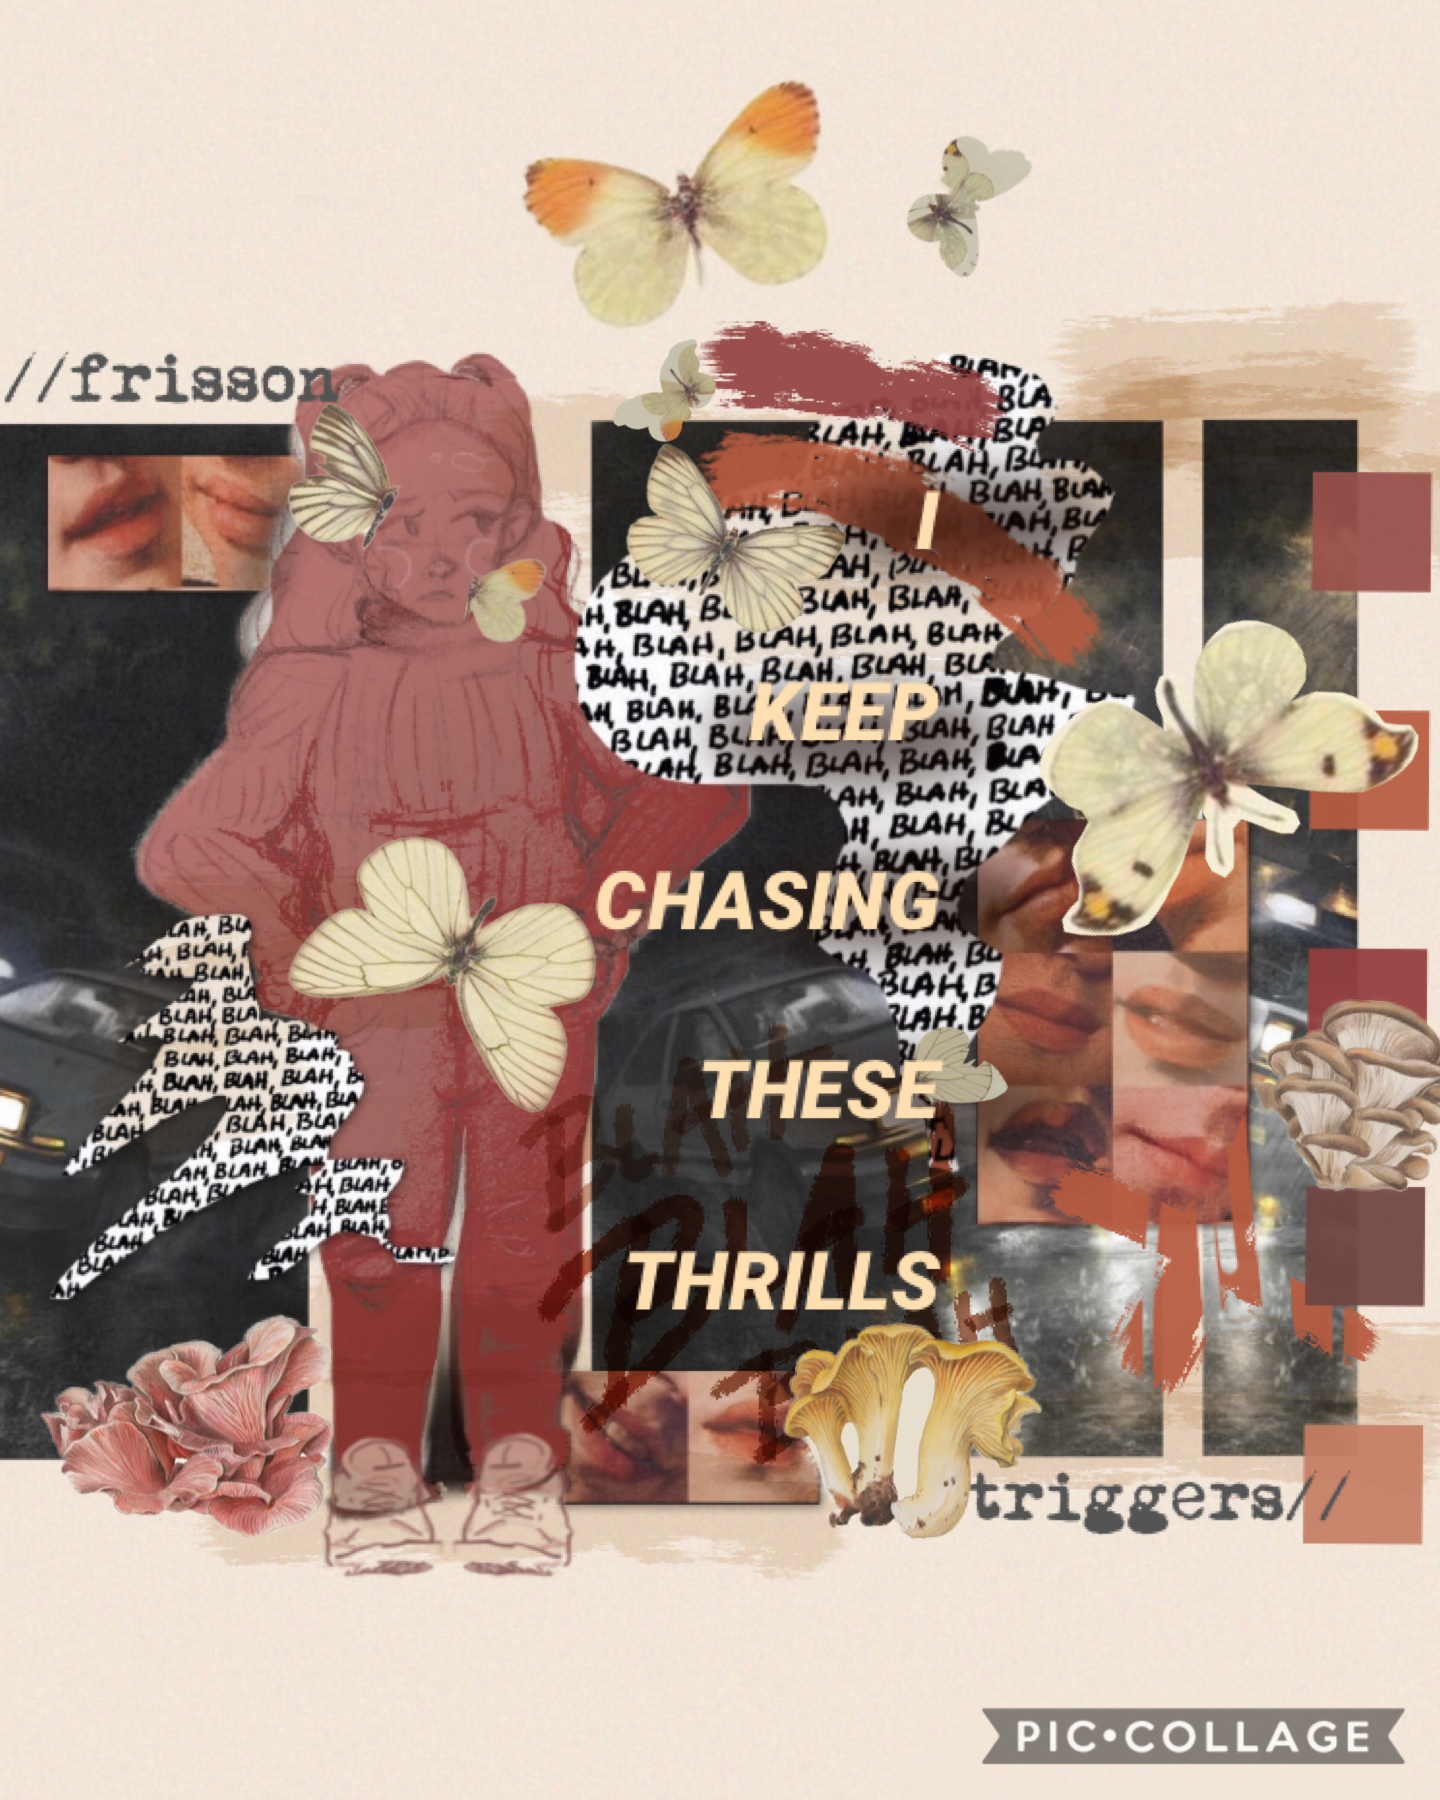 IFL FRISSON TRIGGERS I have a whole playlist of songs that trigger frisson ••• Feat. a lil self portrait of meeee it don't really look like me, she do be wearing my clothes doe ••• I was gonna our this in a series but then my other ideas fell apart so may